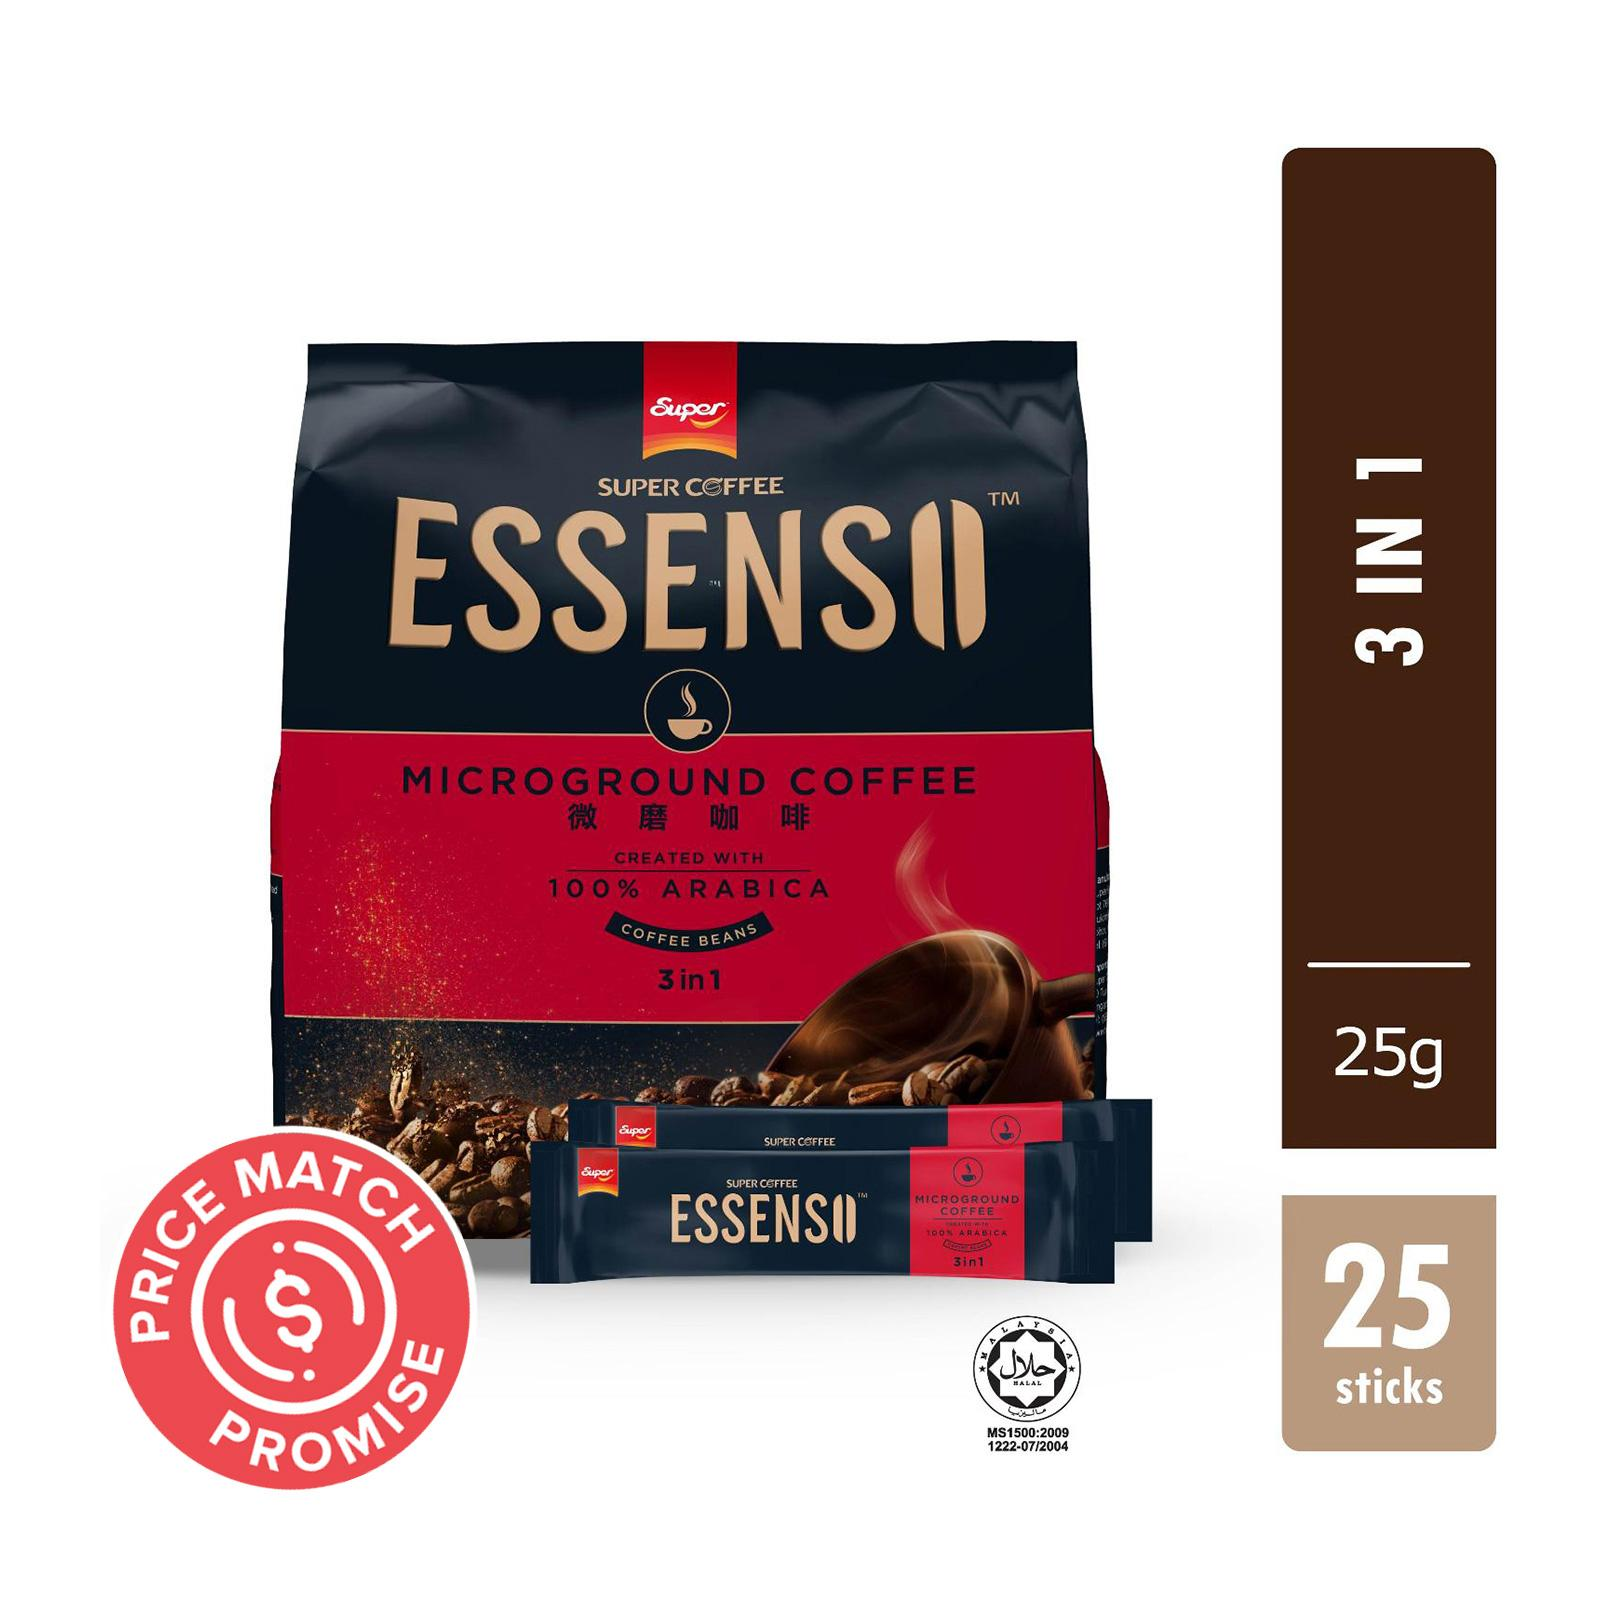 SUPER Instant MicroGround Coffee Essenso 3-In-1 25sX25g